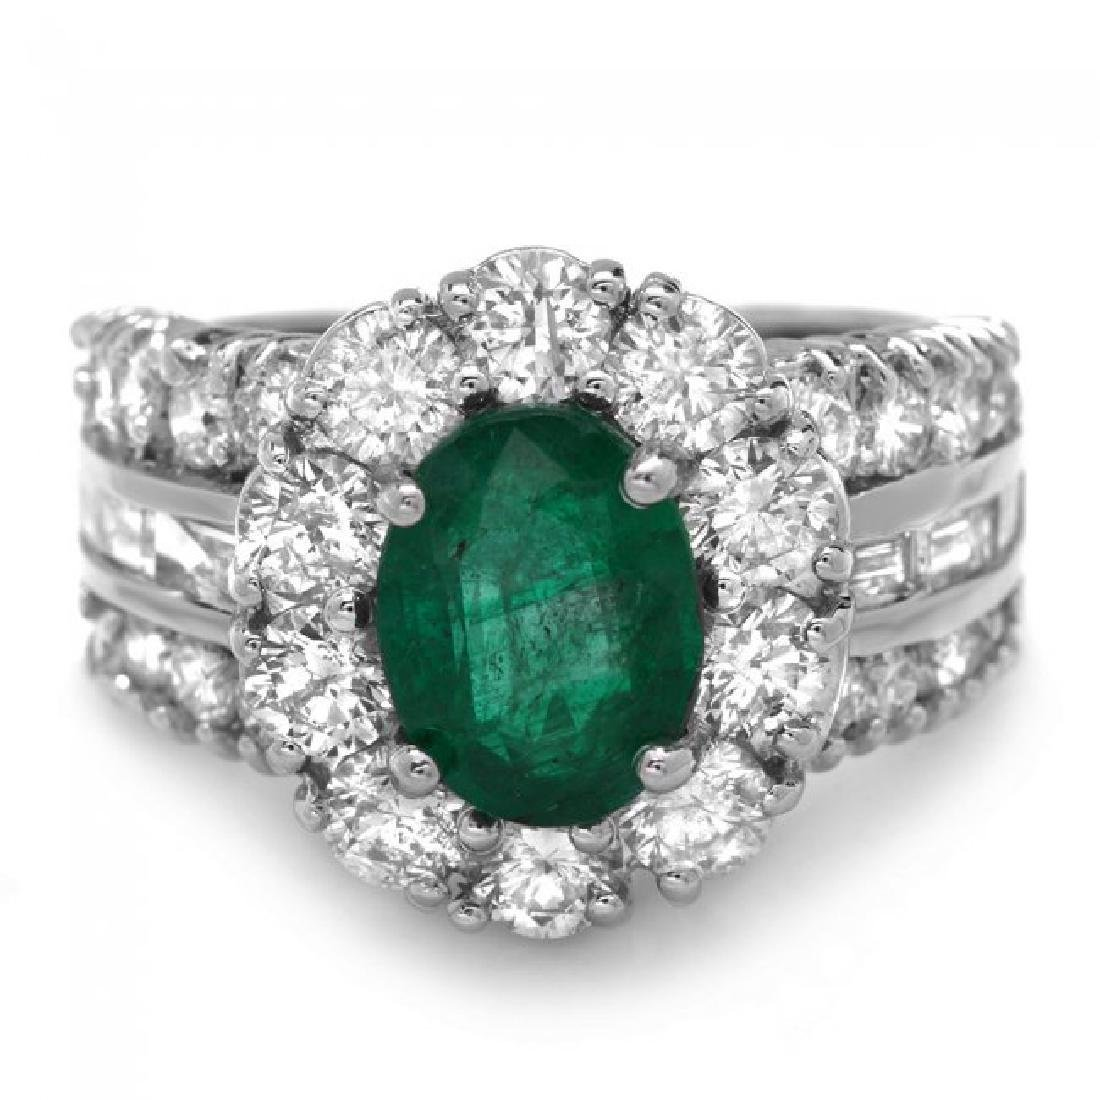 14k White Gold 2.10ct Emerald 3ct Diamond Ring - 2